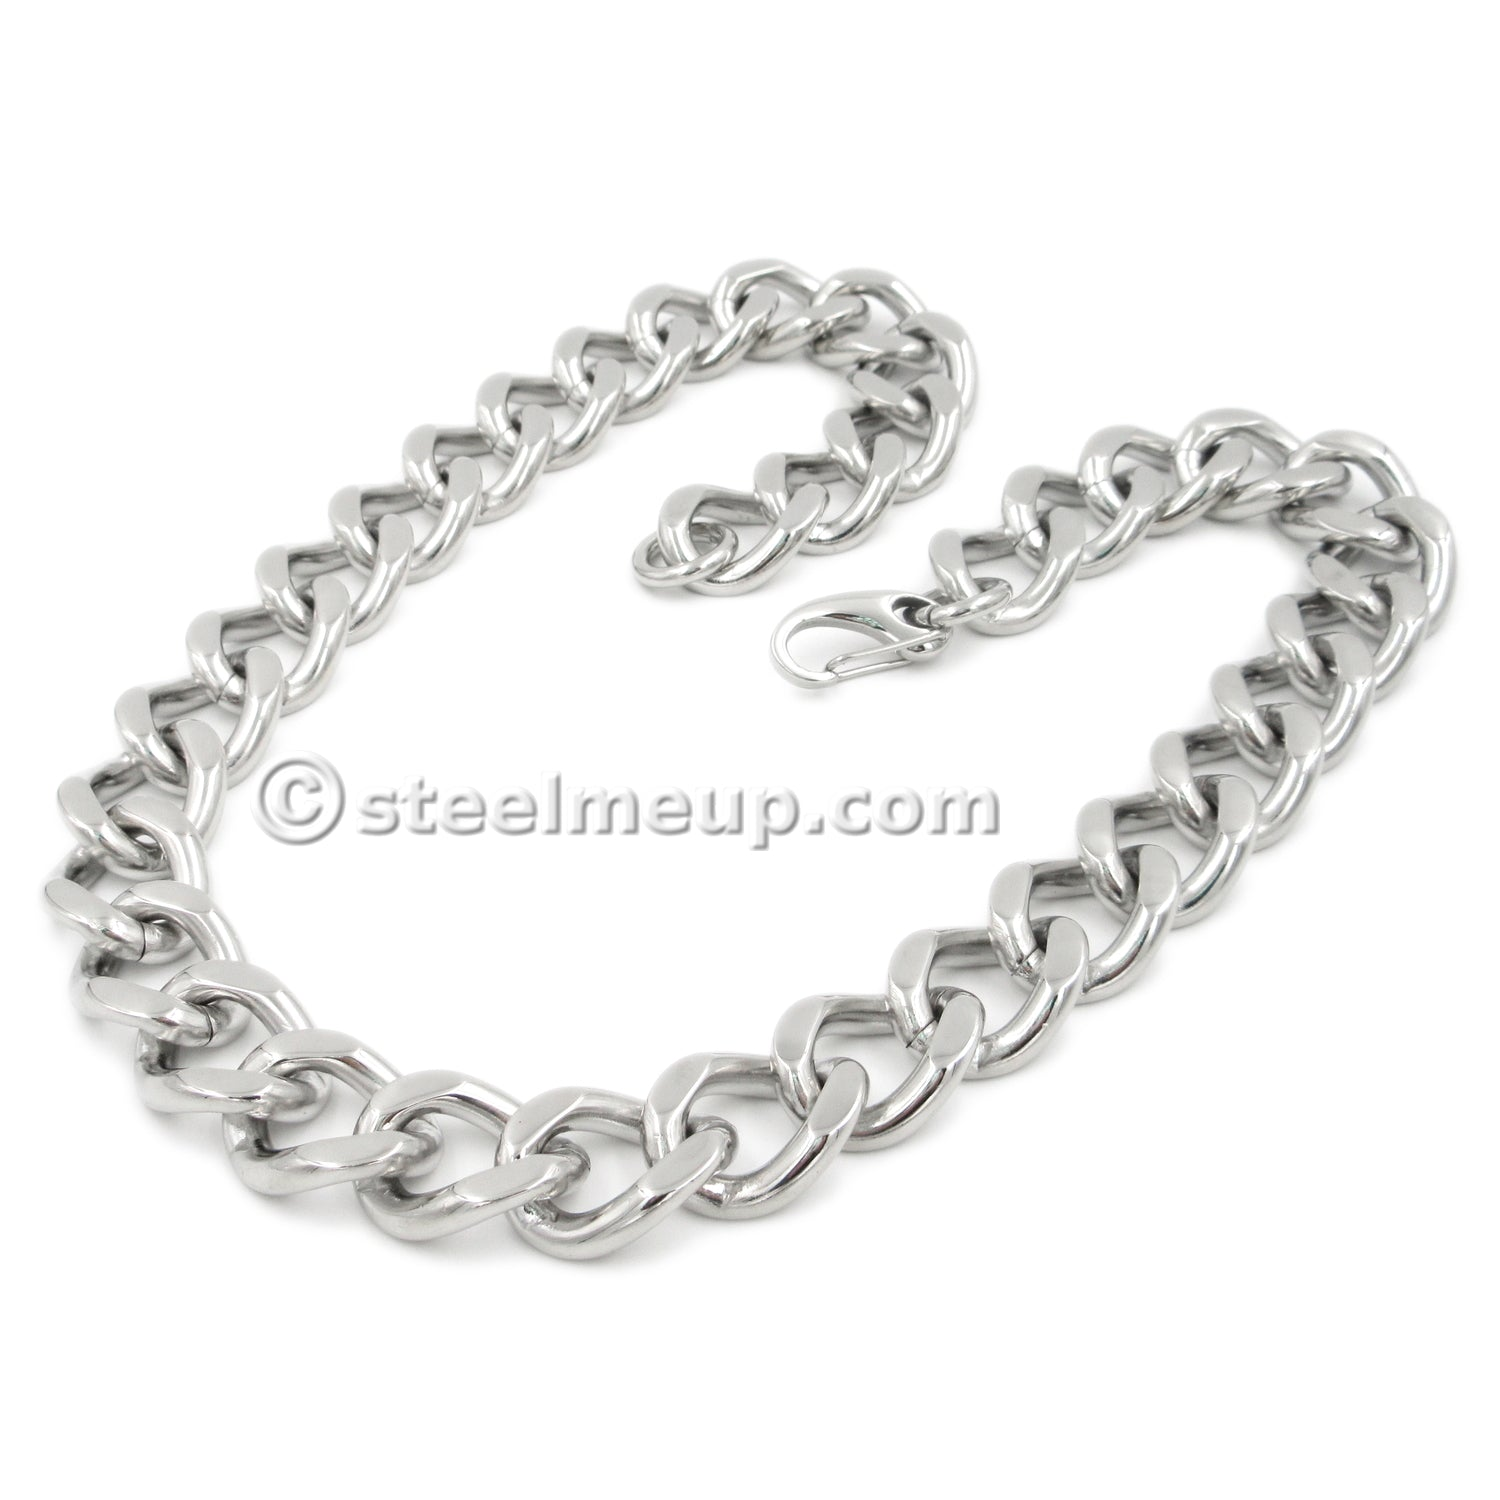 Stainless Steel Wide Heavy Curb Chain Men Necklace 21mm 23.5""